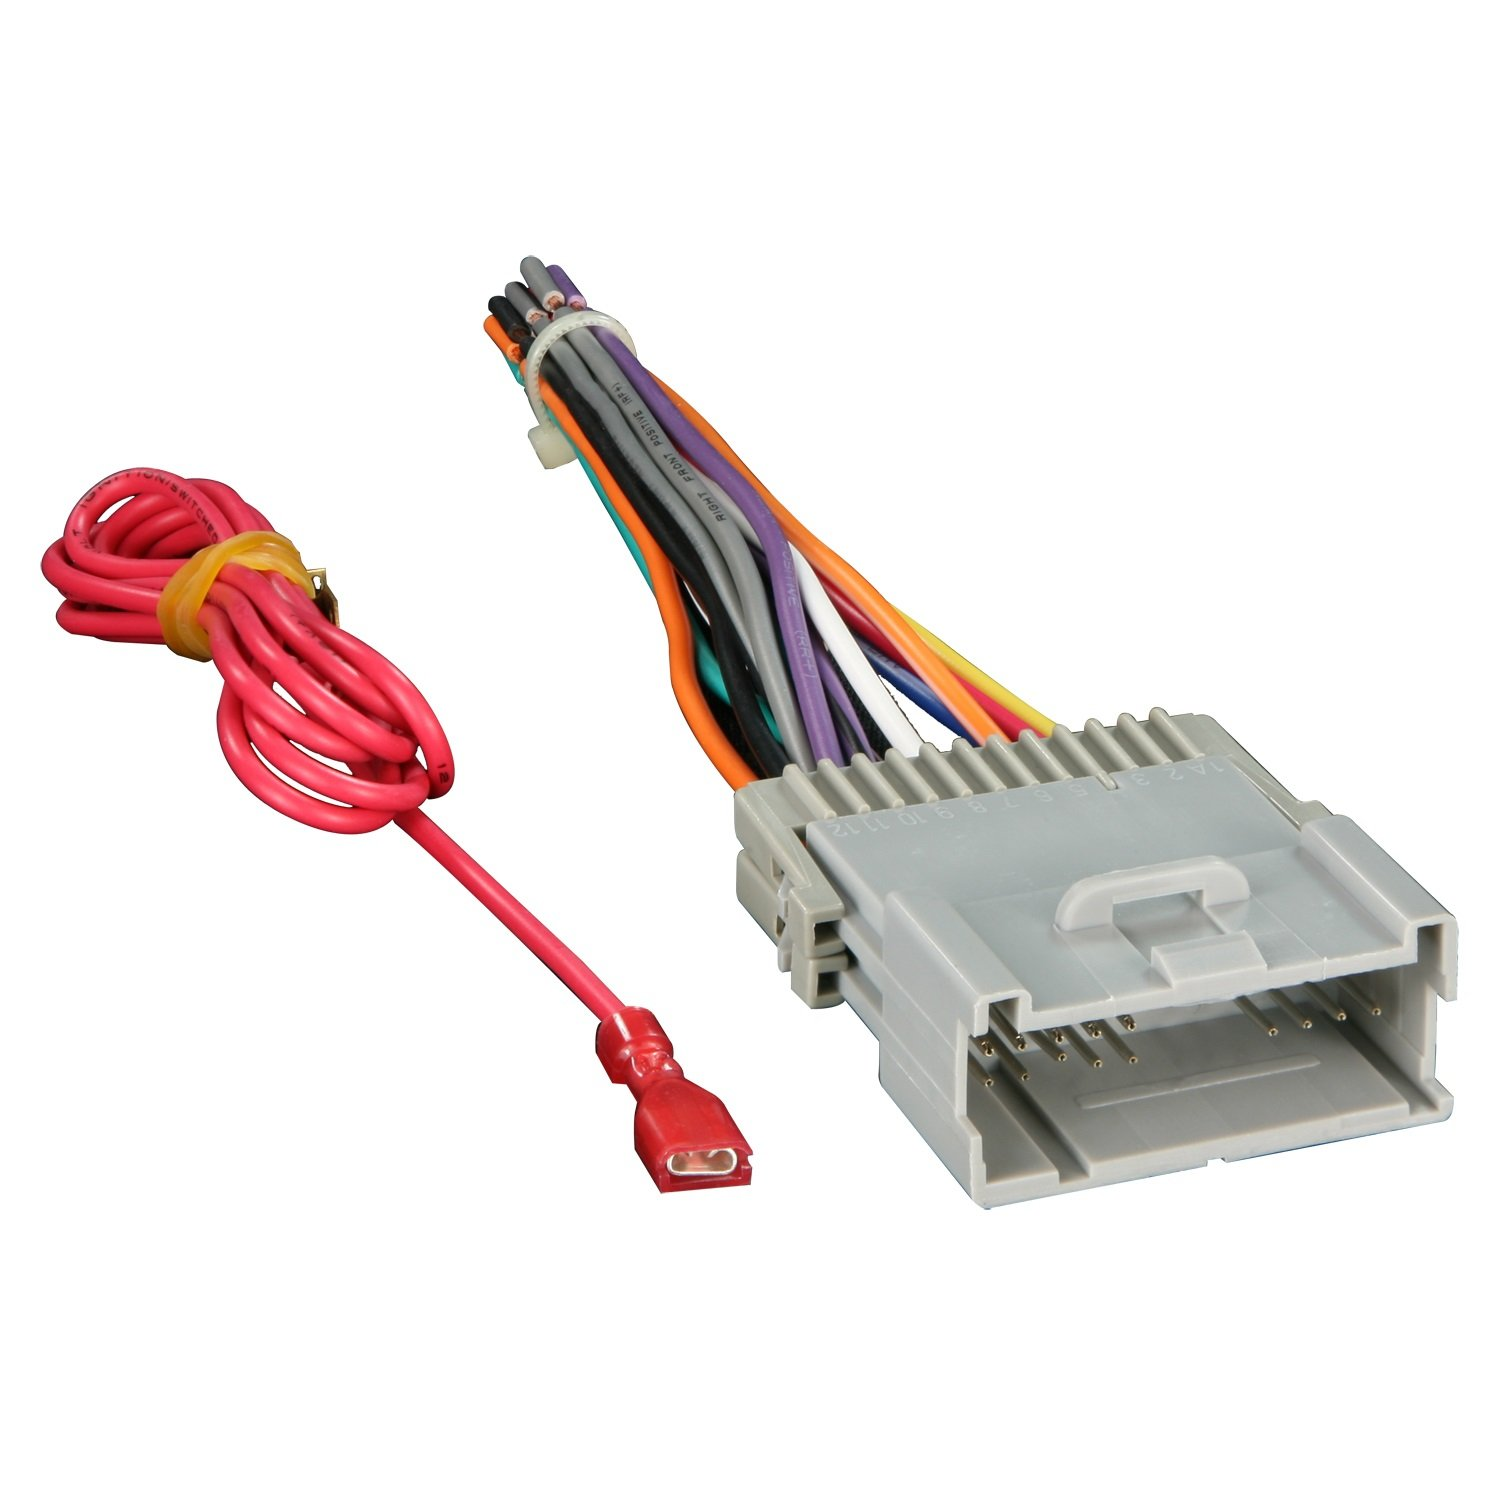 Amazon.com: Metra 70-2003 Radio Wiring Harness For GM 98-08 ...